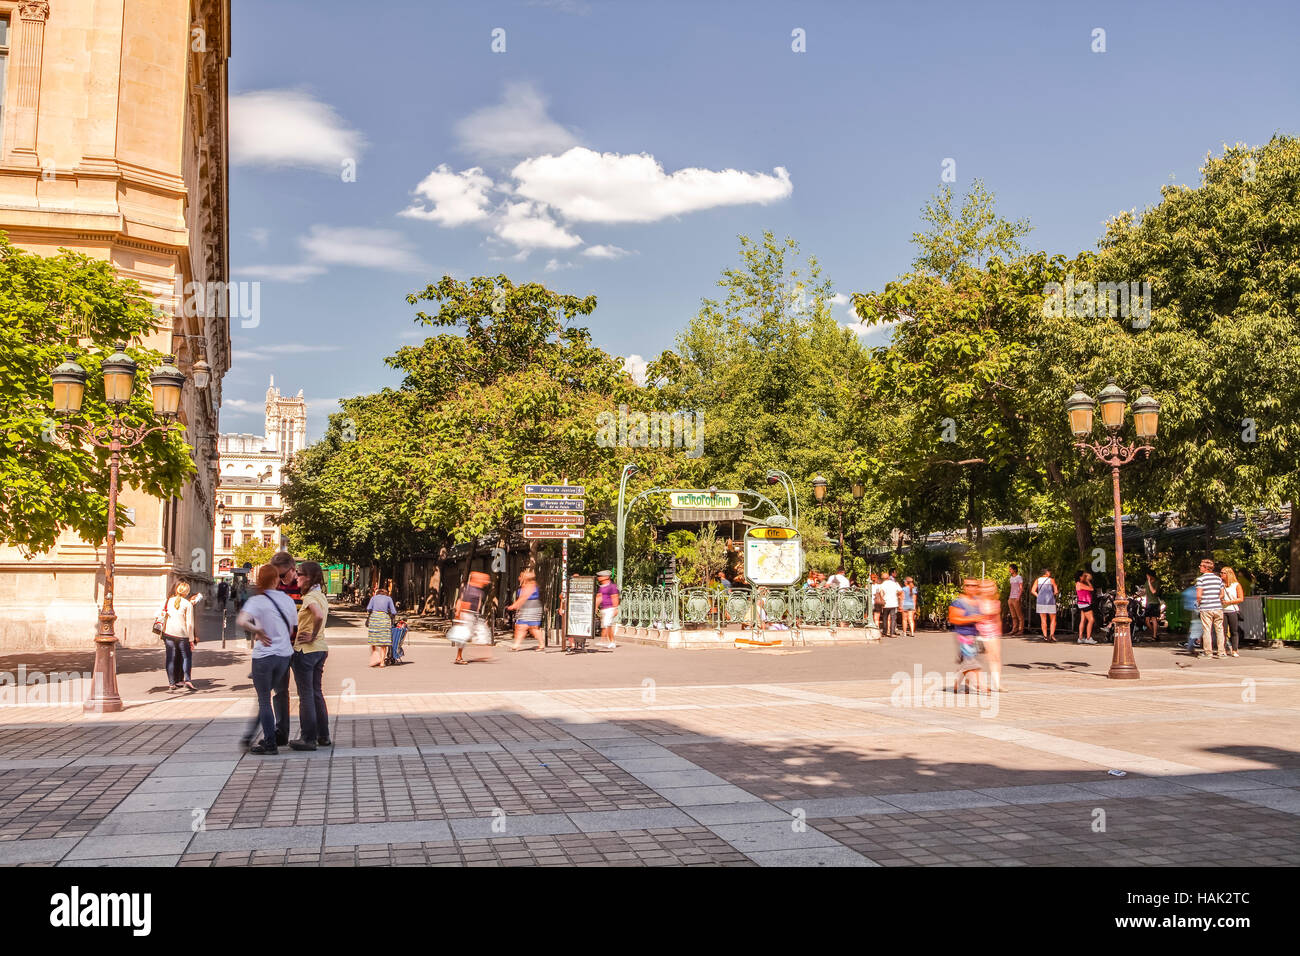 Place Louis Lepine on the Ile de la Cite. - Stock Image